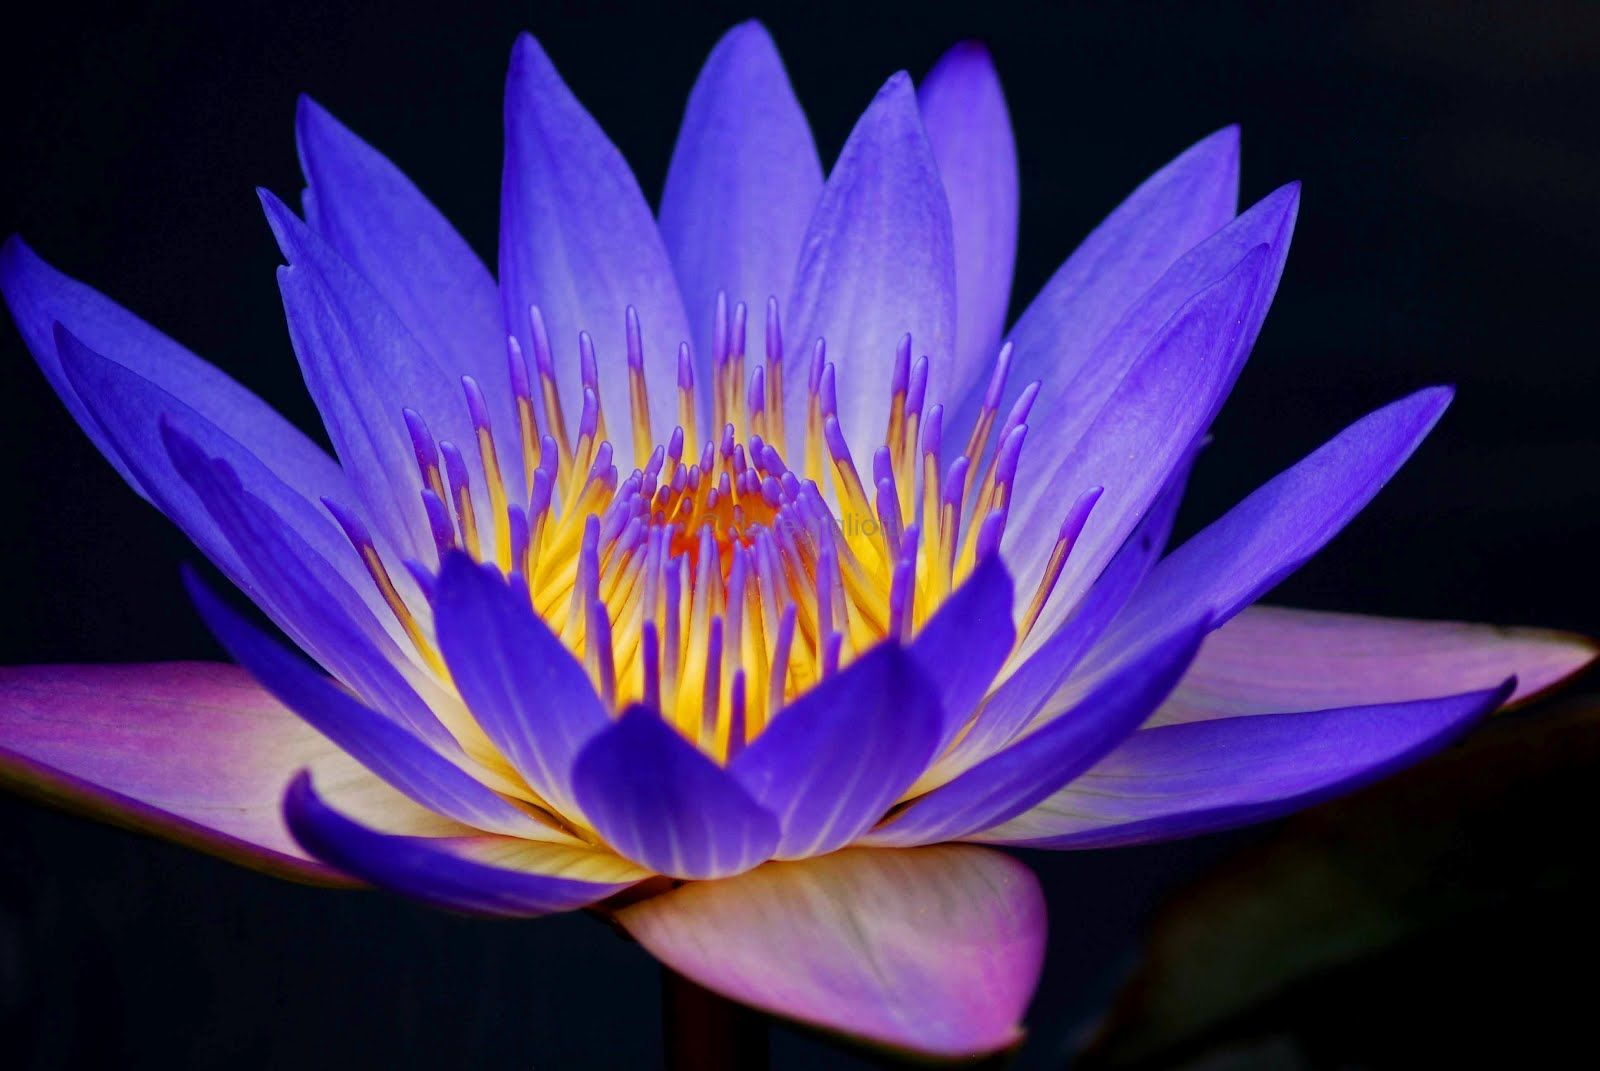 Blue lotus flower meaning the water lily is the first flower blue lotus flower meaning the water lily is the first flower mentioned in world mightylinksfo Choice Image